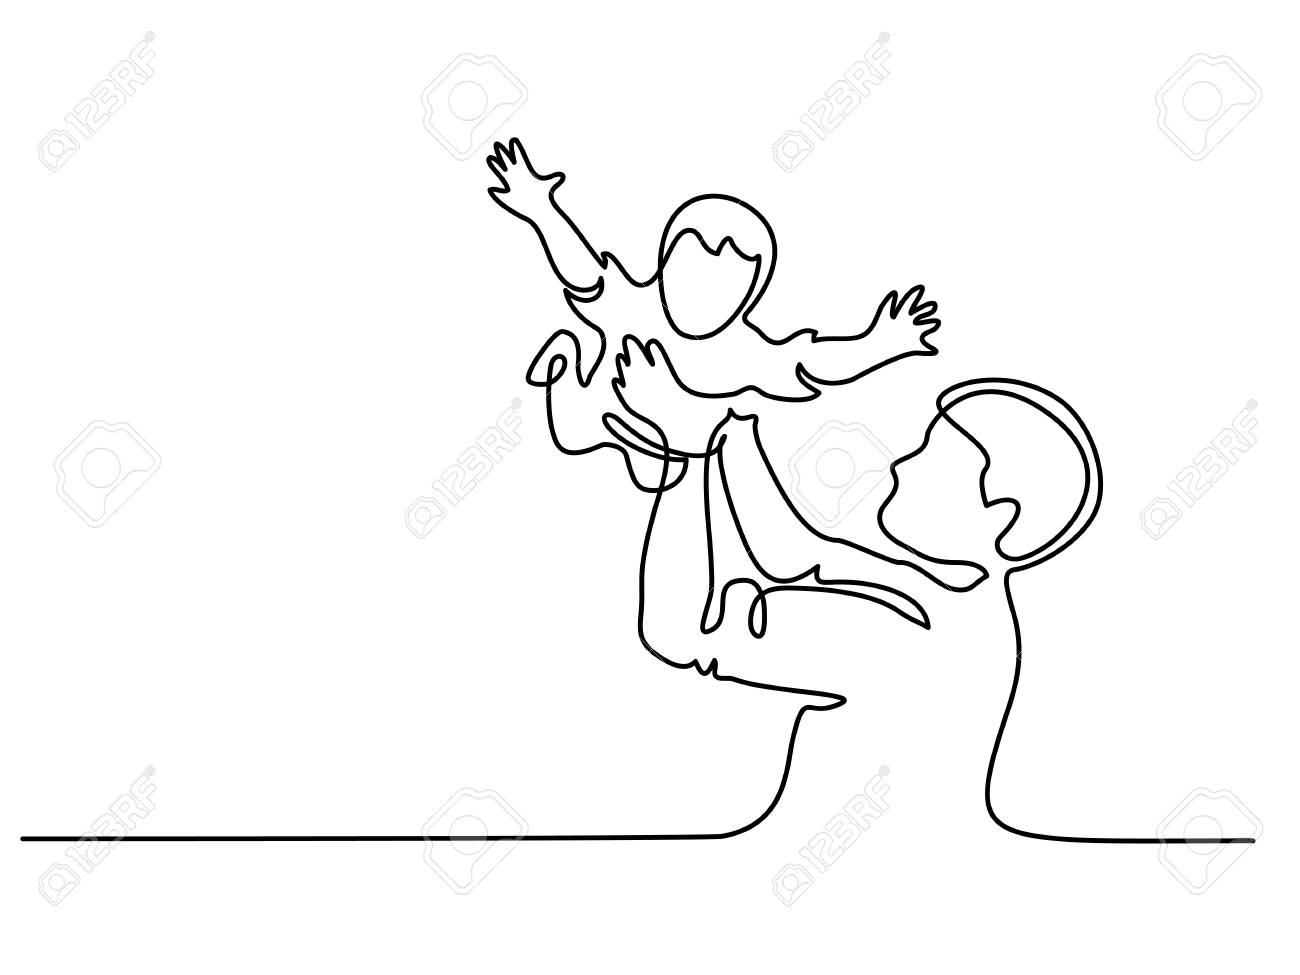 Continuous line drawing. Father holding happy son up in air vector illustration. - 95338048